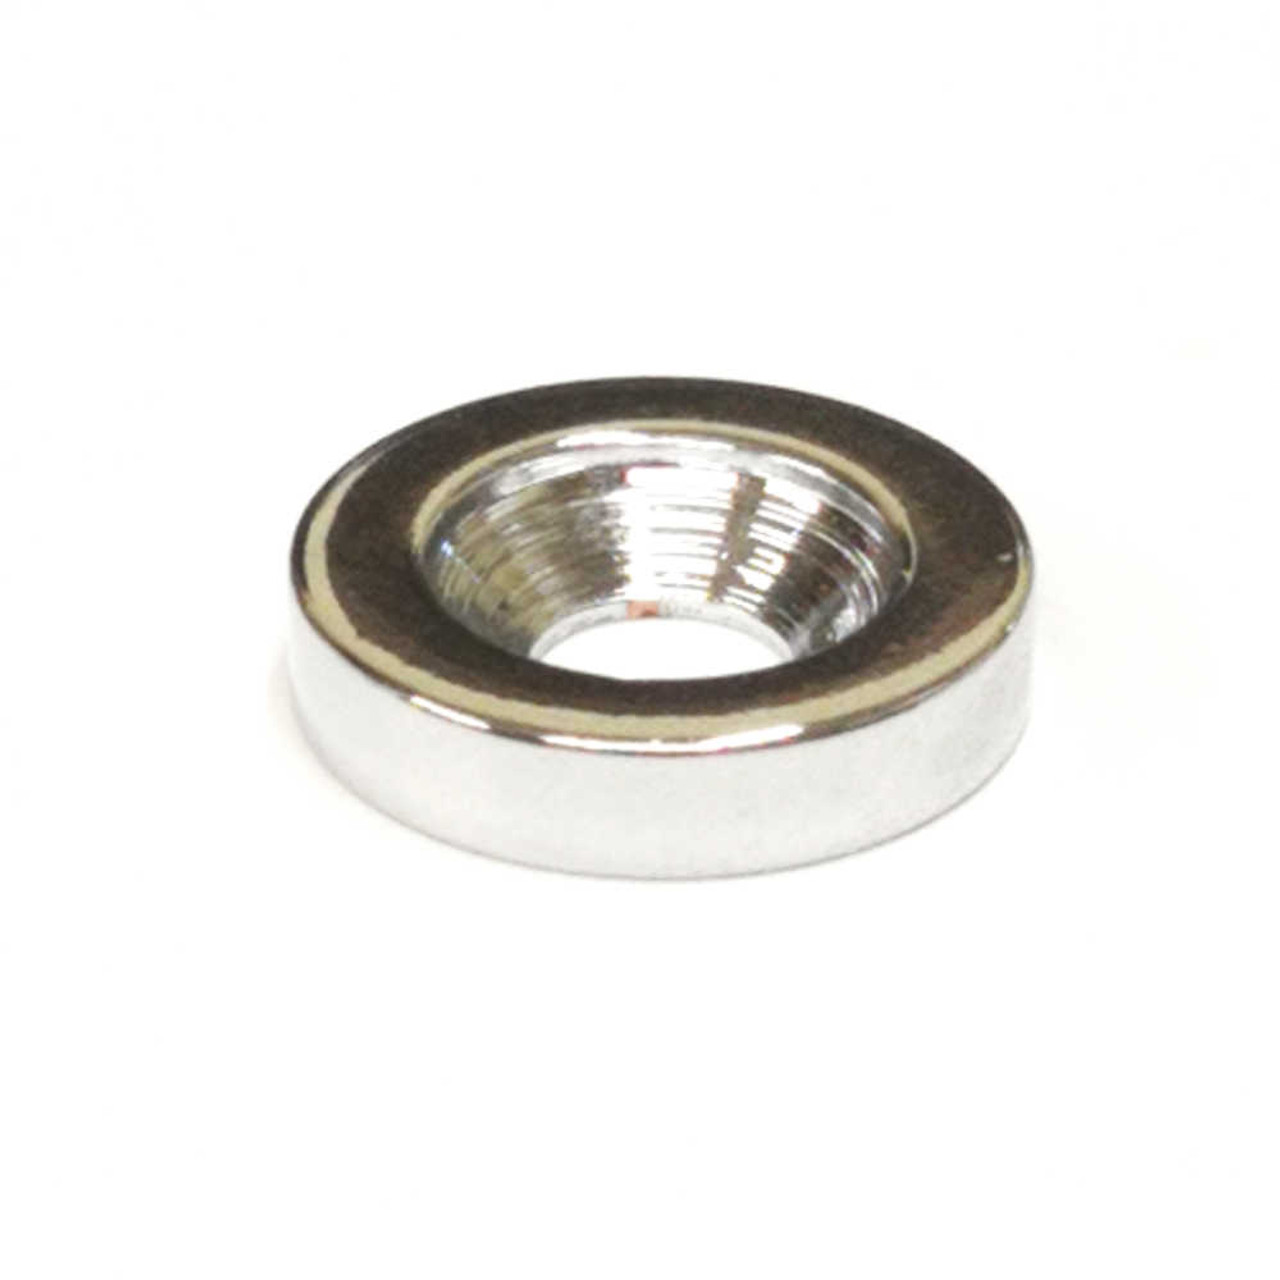 Neck Joint Bushings - Chrome